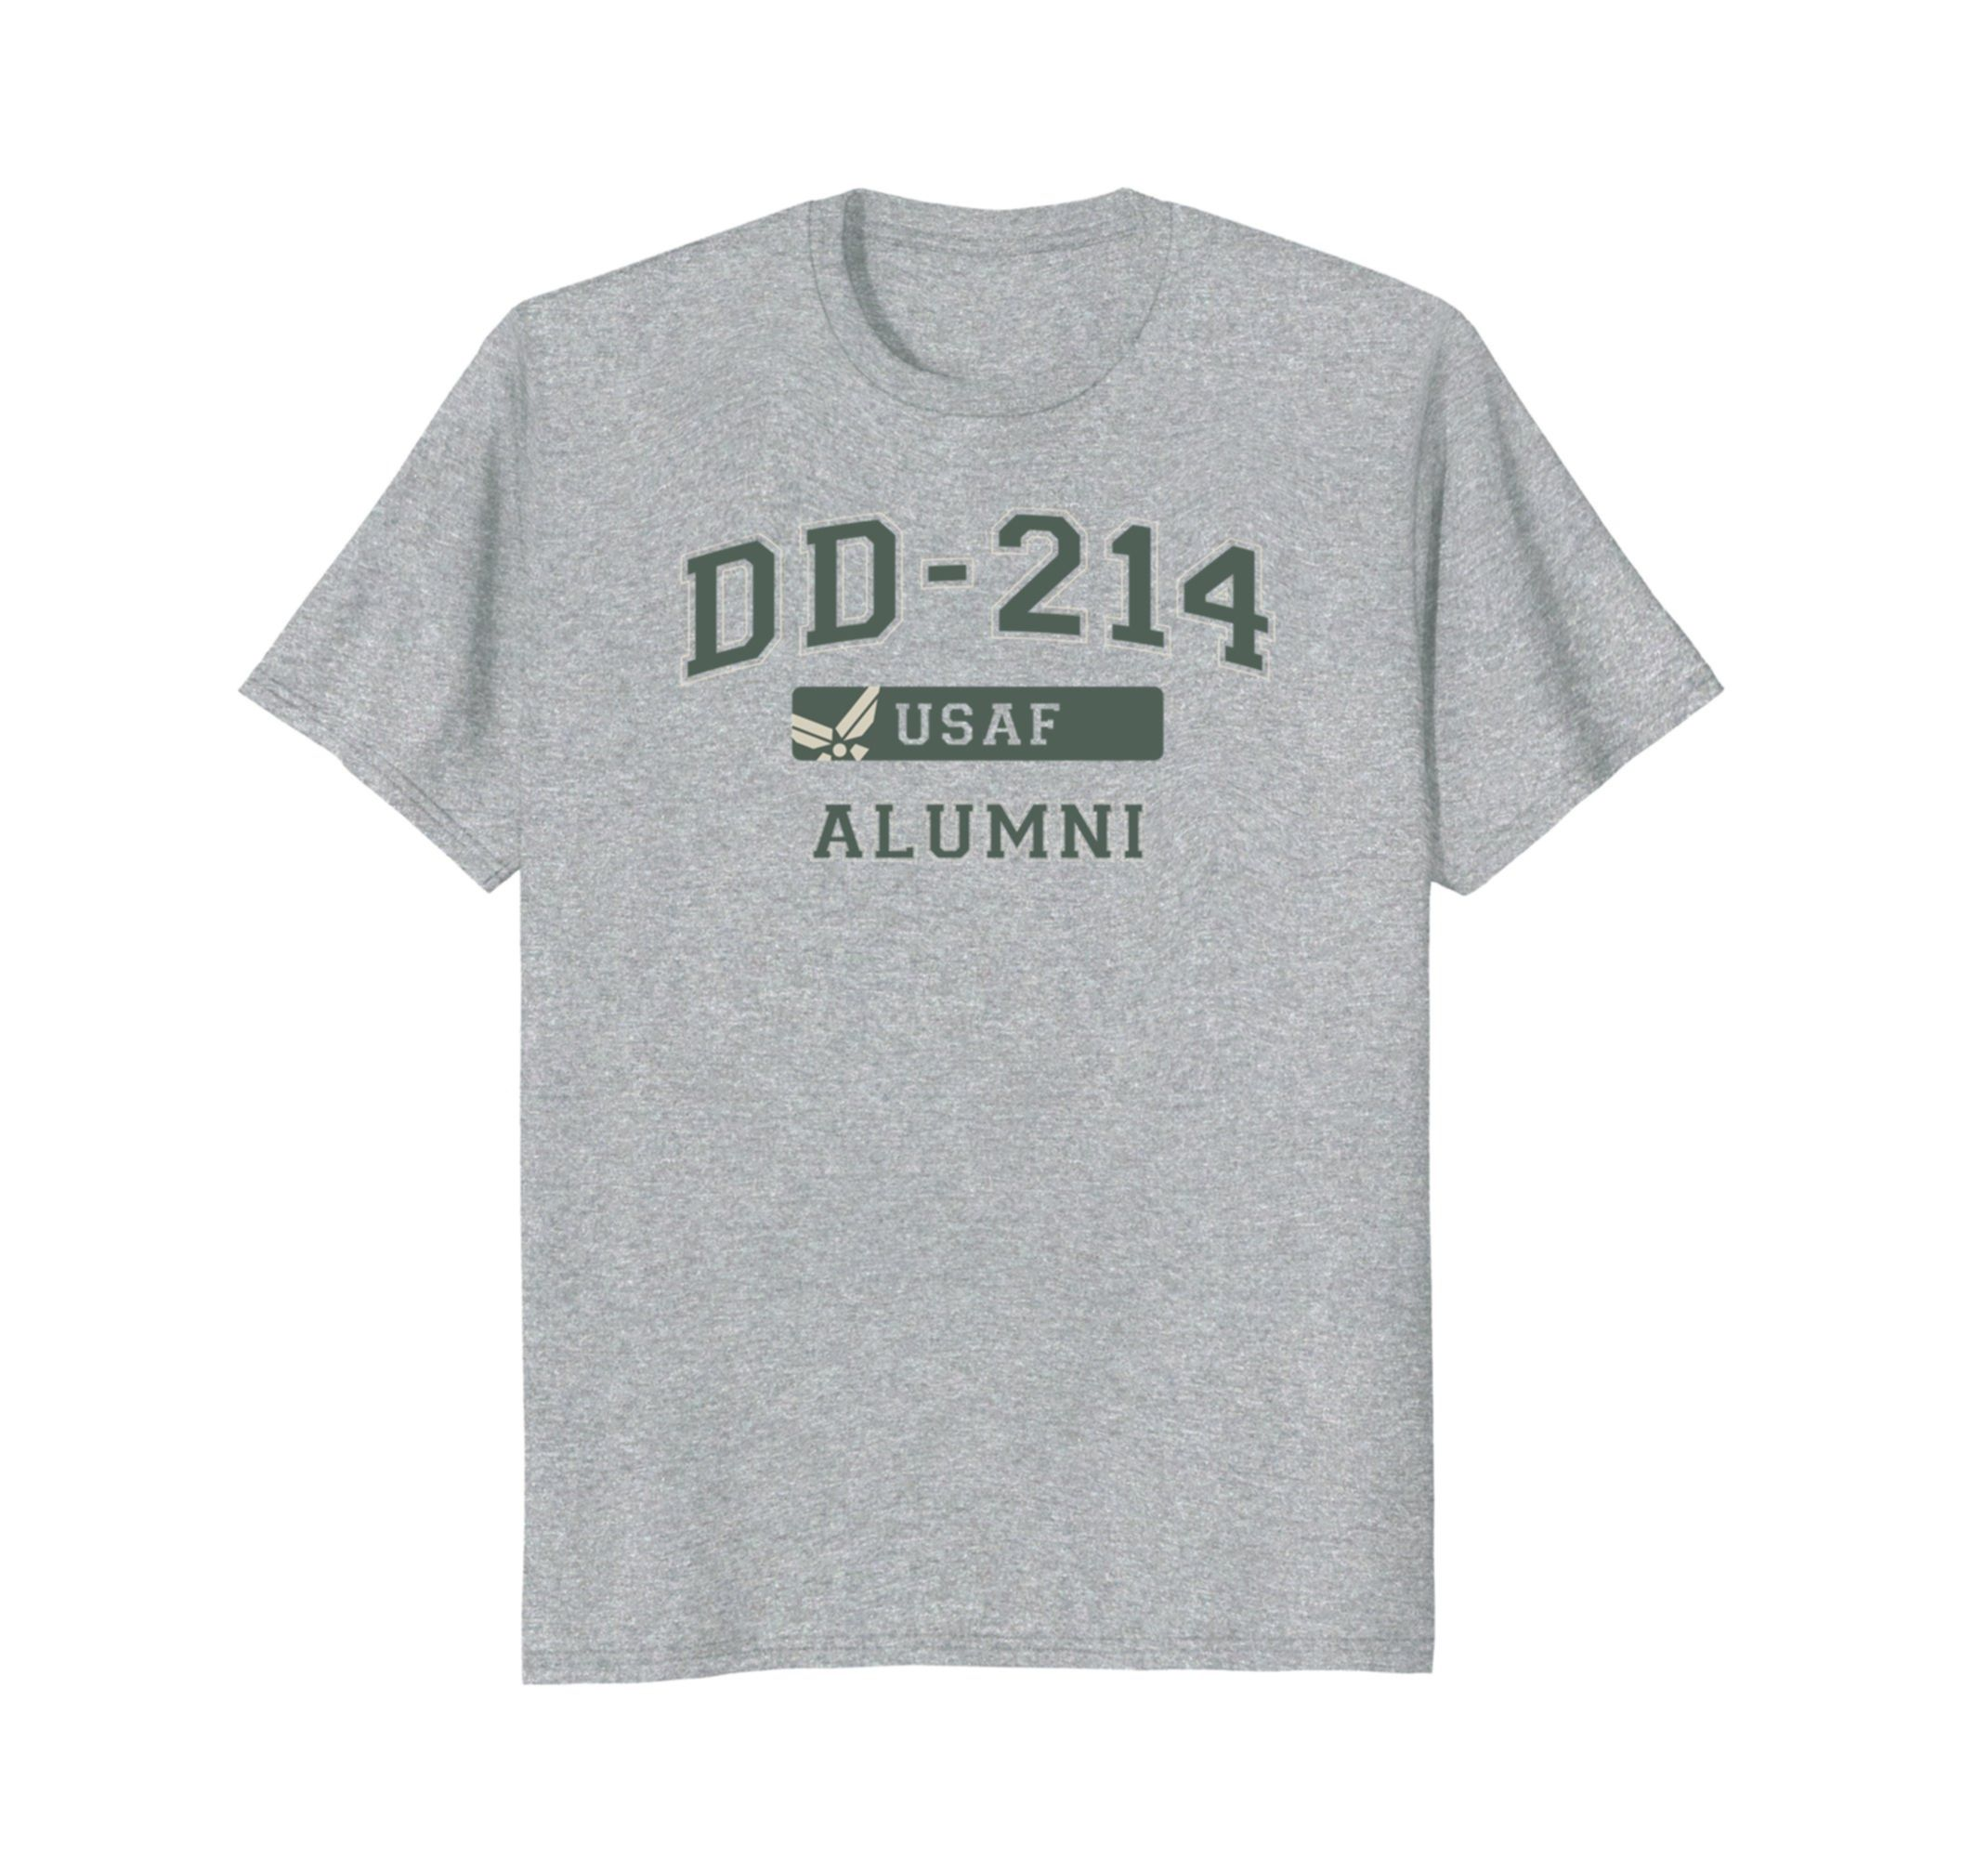 For All Those Who Have Proudly Served In The United States Air Force This Abu Colored Design Dd 214 Shirt Shows Your Pride At Ha Shirts Us Air Force Air Force